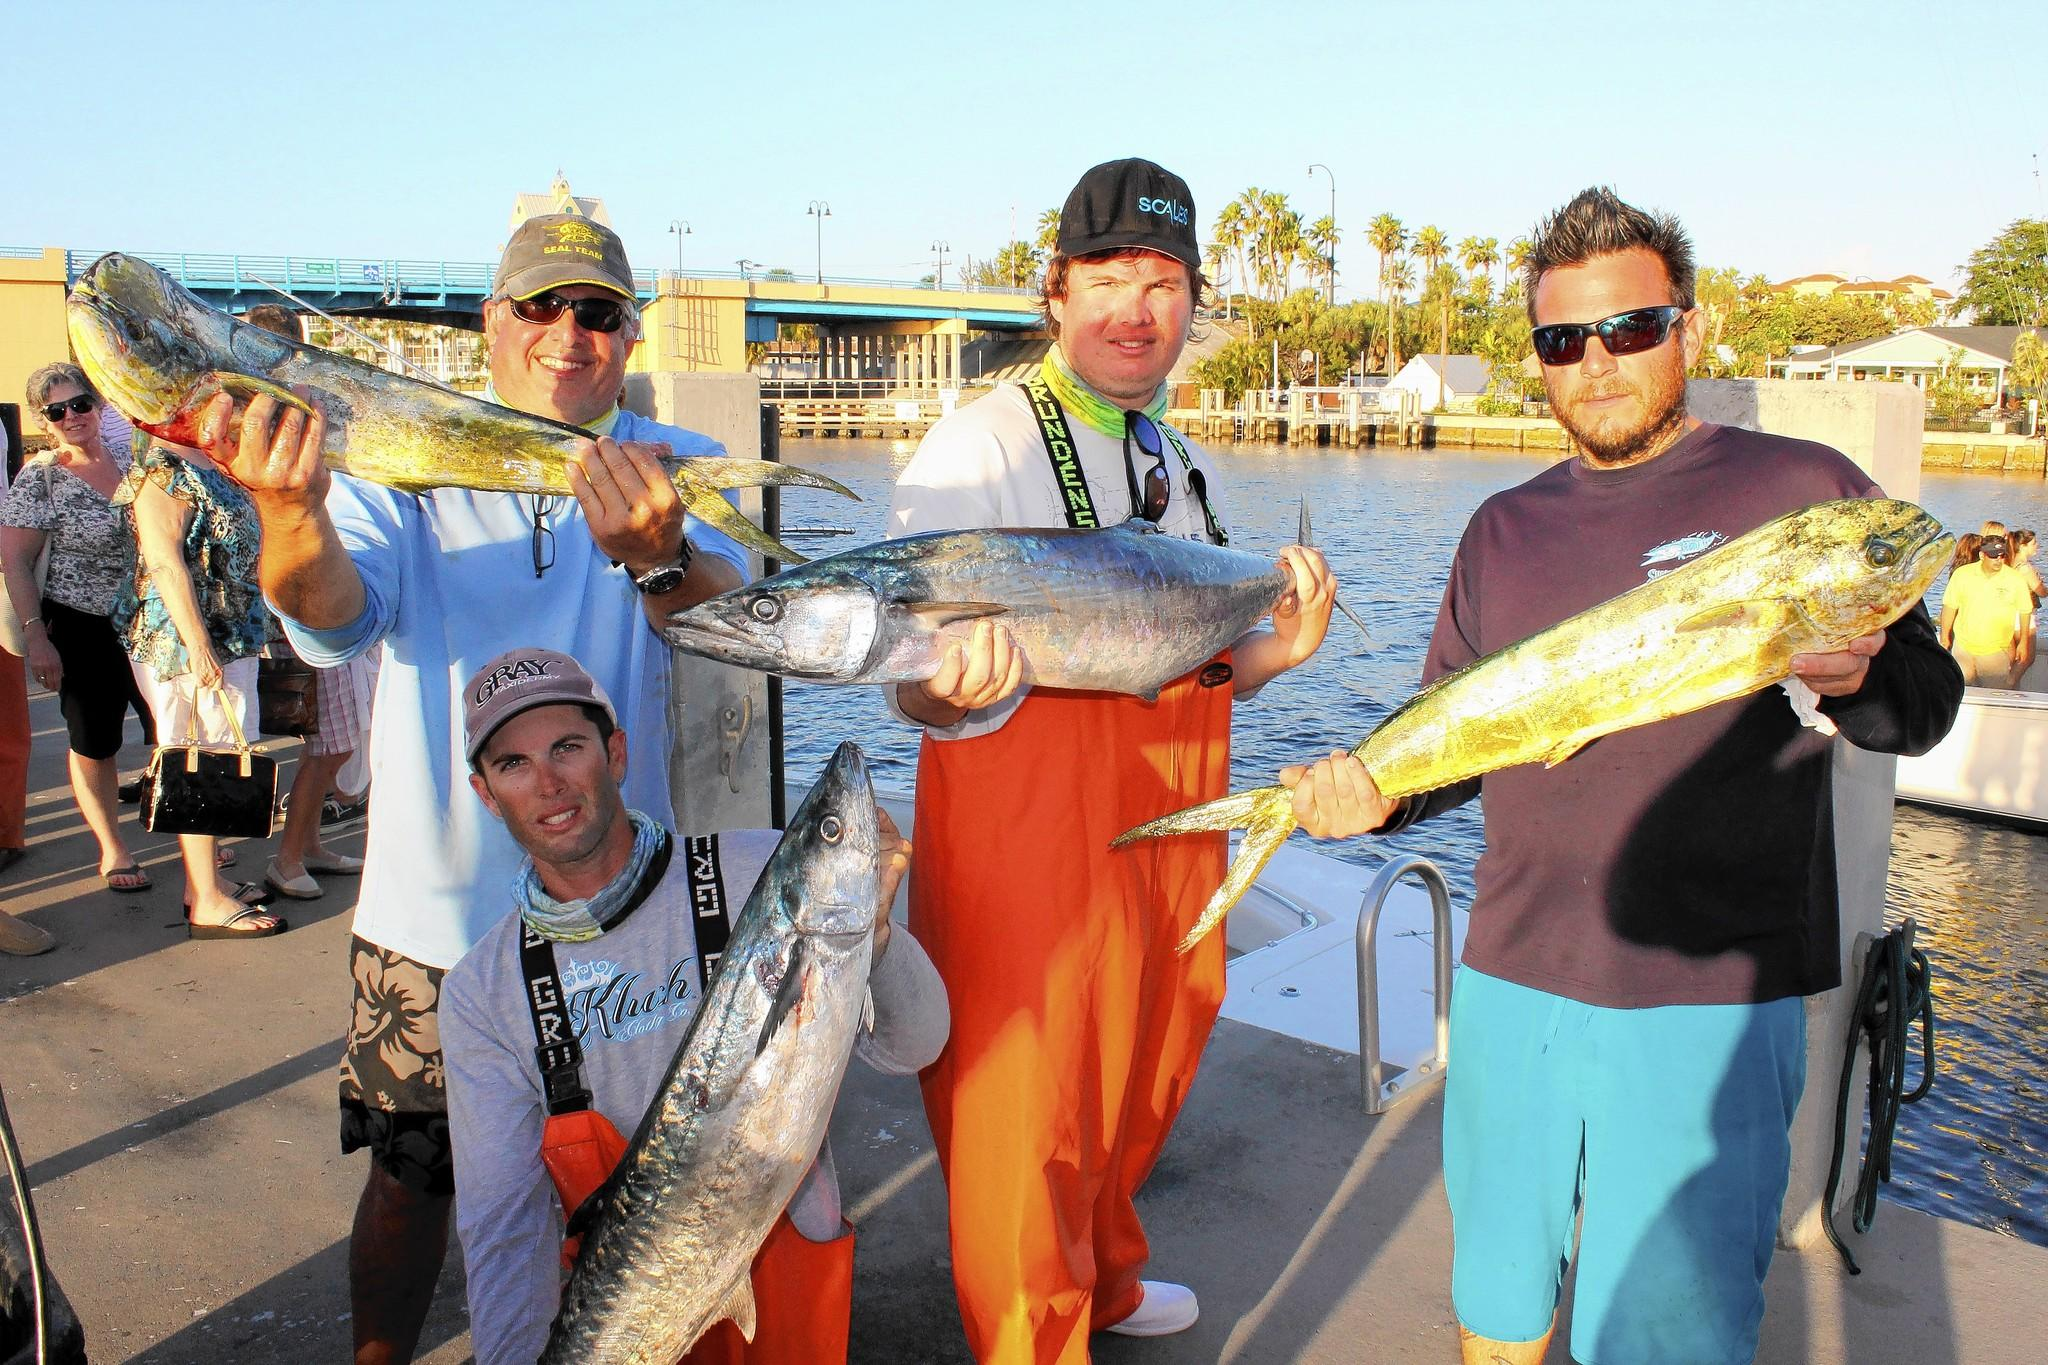 The Fourth Annual Two Georges at The Cove Billfish Tournament raised money for Jim & Jan Moran's Boys & Girls Club in Deerfield Beach. The crew from Adversity show off some of their catches of the day at the restaurants dock. Pictured are, kneeling: Nick Cardella. Standing, from left: Matt Cardella, Chris Cardella and Tommy Gargulio.